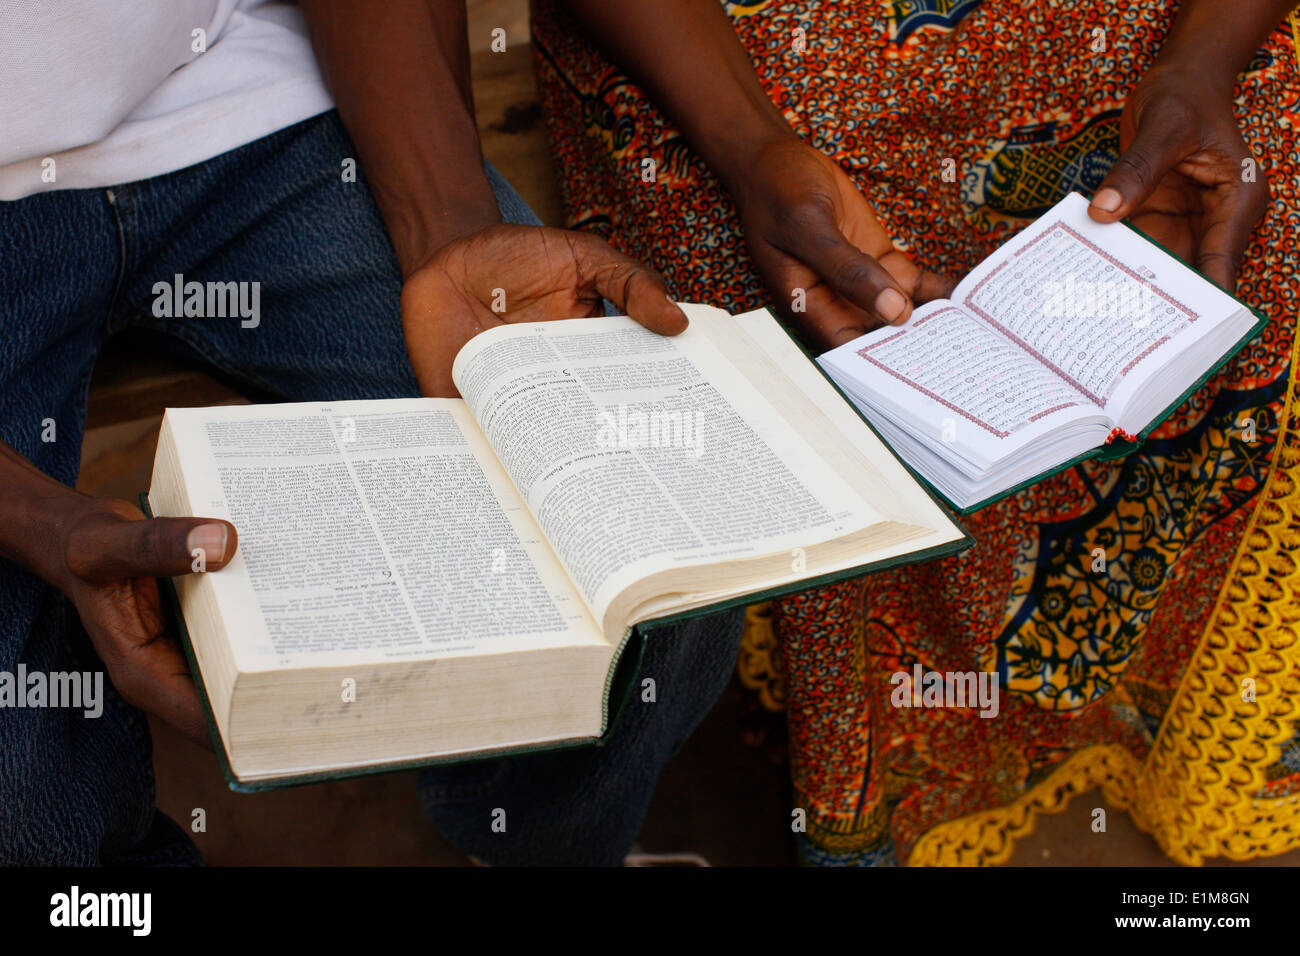 Africans reading the Bible and the Koran. - Stock Image